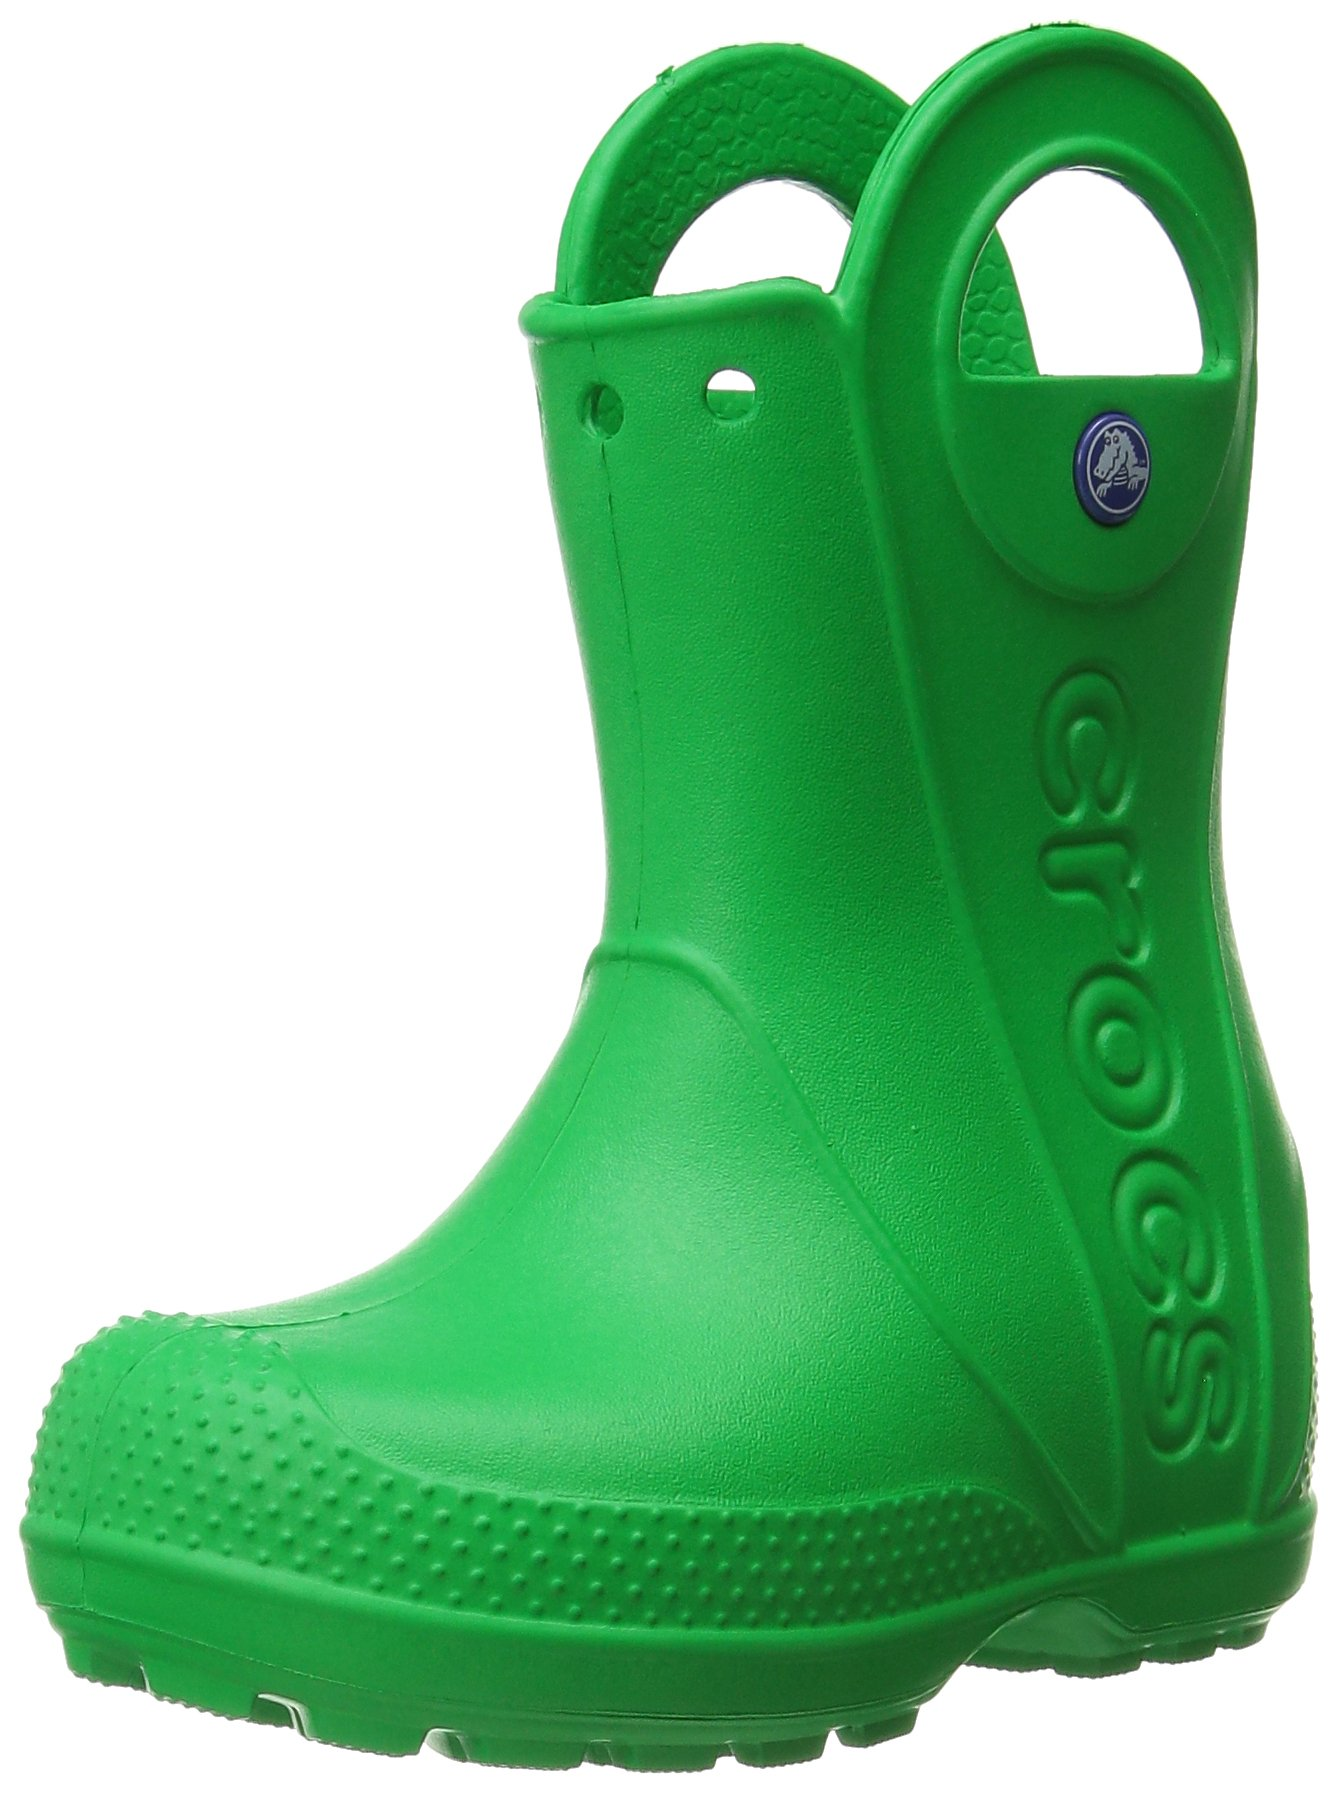 Crocs Kids' Handle It Rain Boots, Easy On for Toddlers, Boys, Girls, Lightweight and Waterproof, Grass Green, 9 M US Toddler